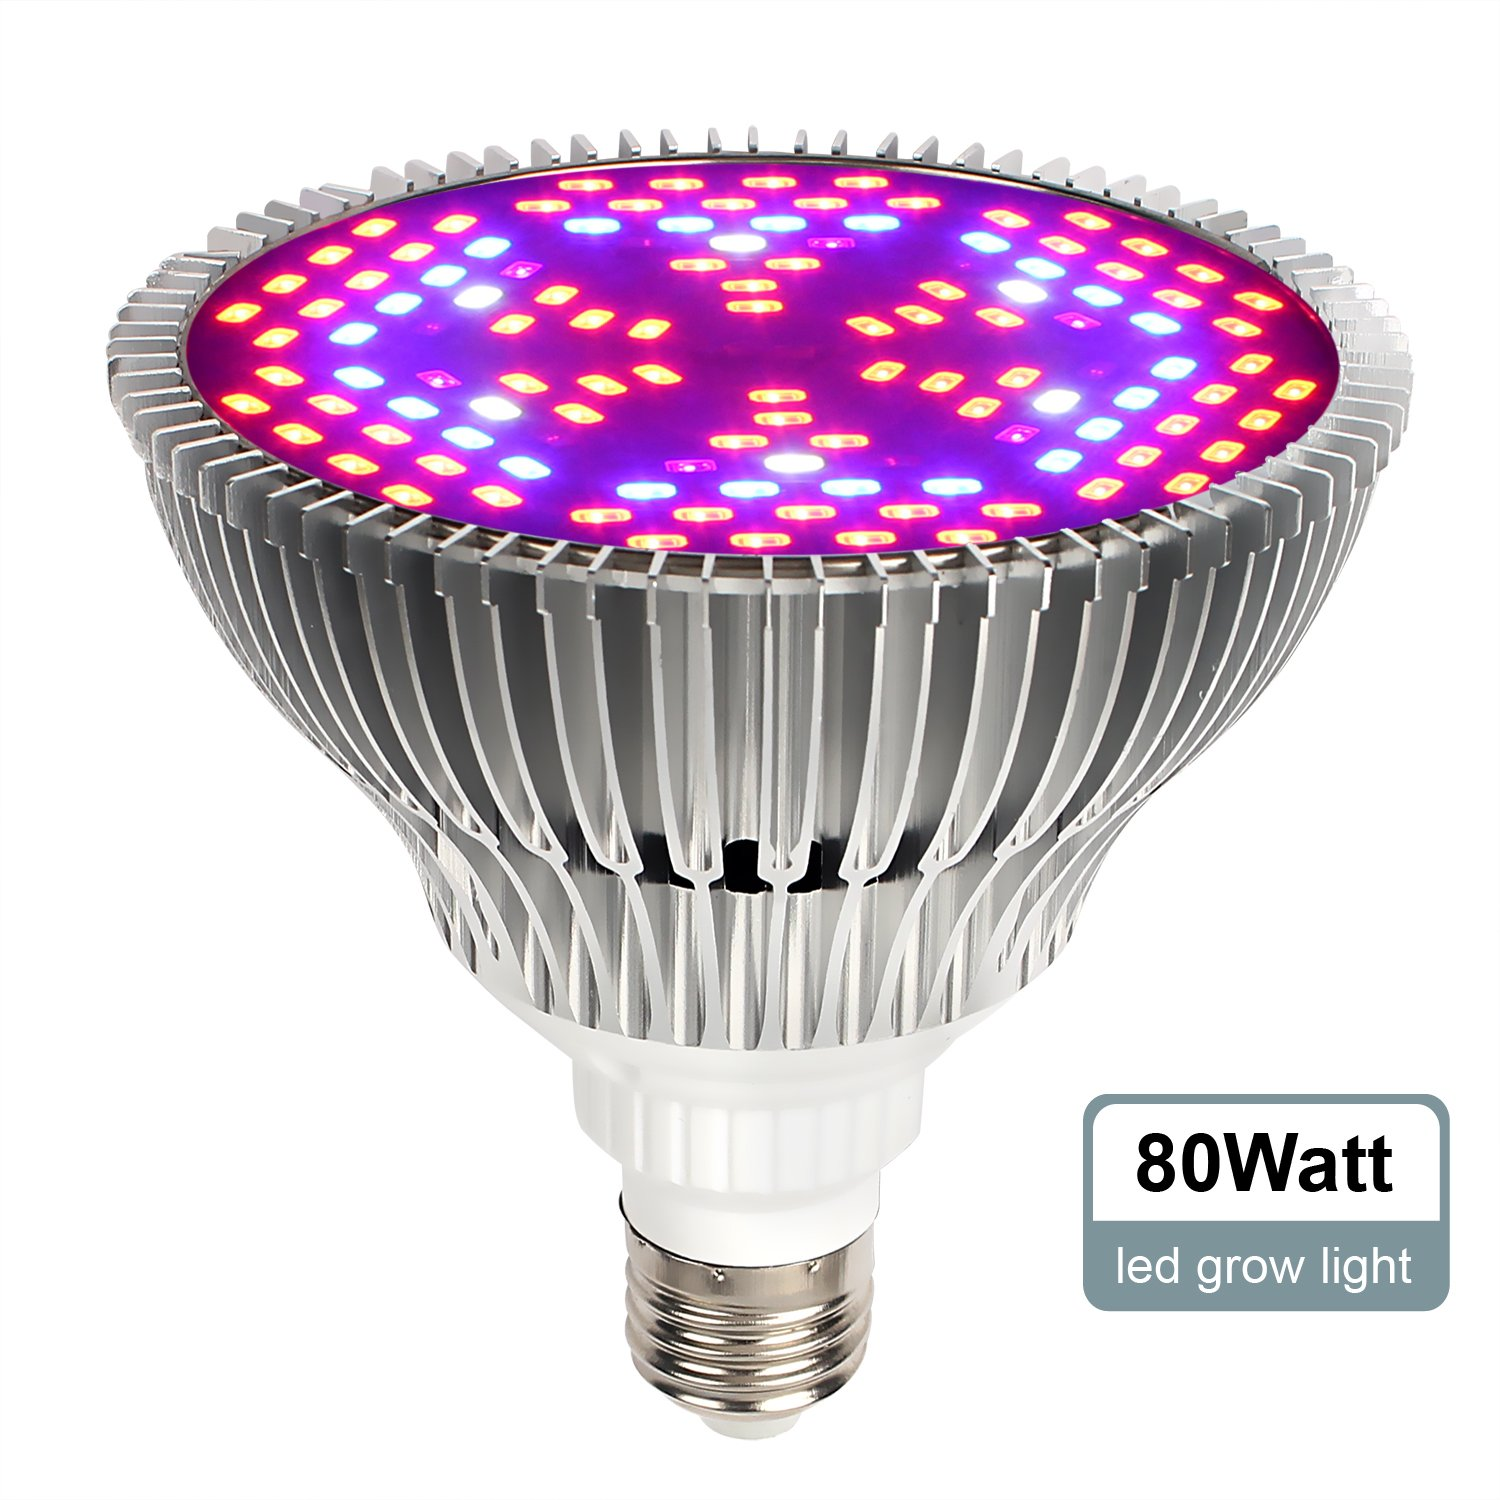 indoor frontpage light vintage hydroponics perfect for seedling spectrum growing best or high bulb yield grow full lights products plants led collections